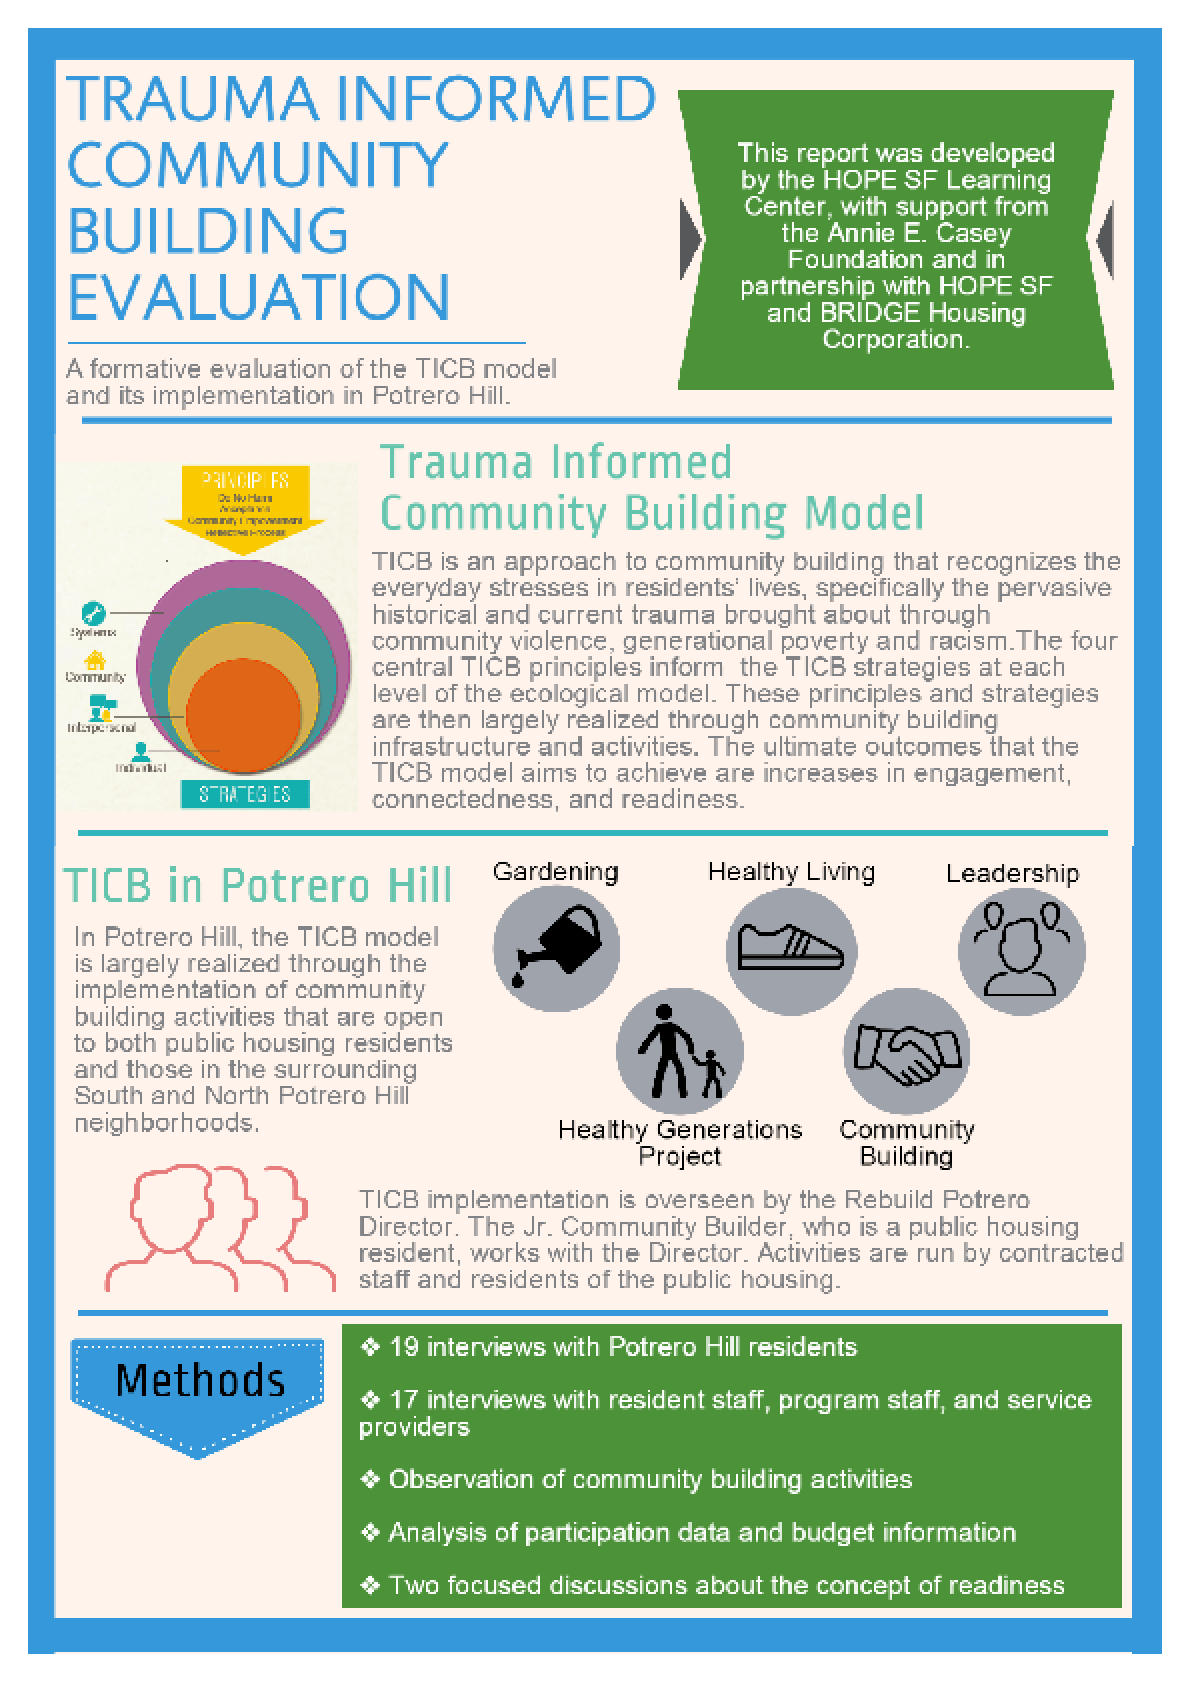 Trauma Informed Community Building Evaluation